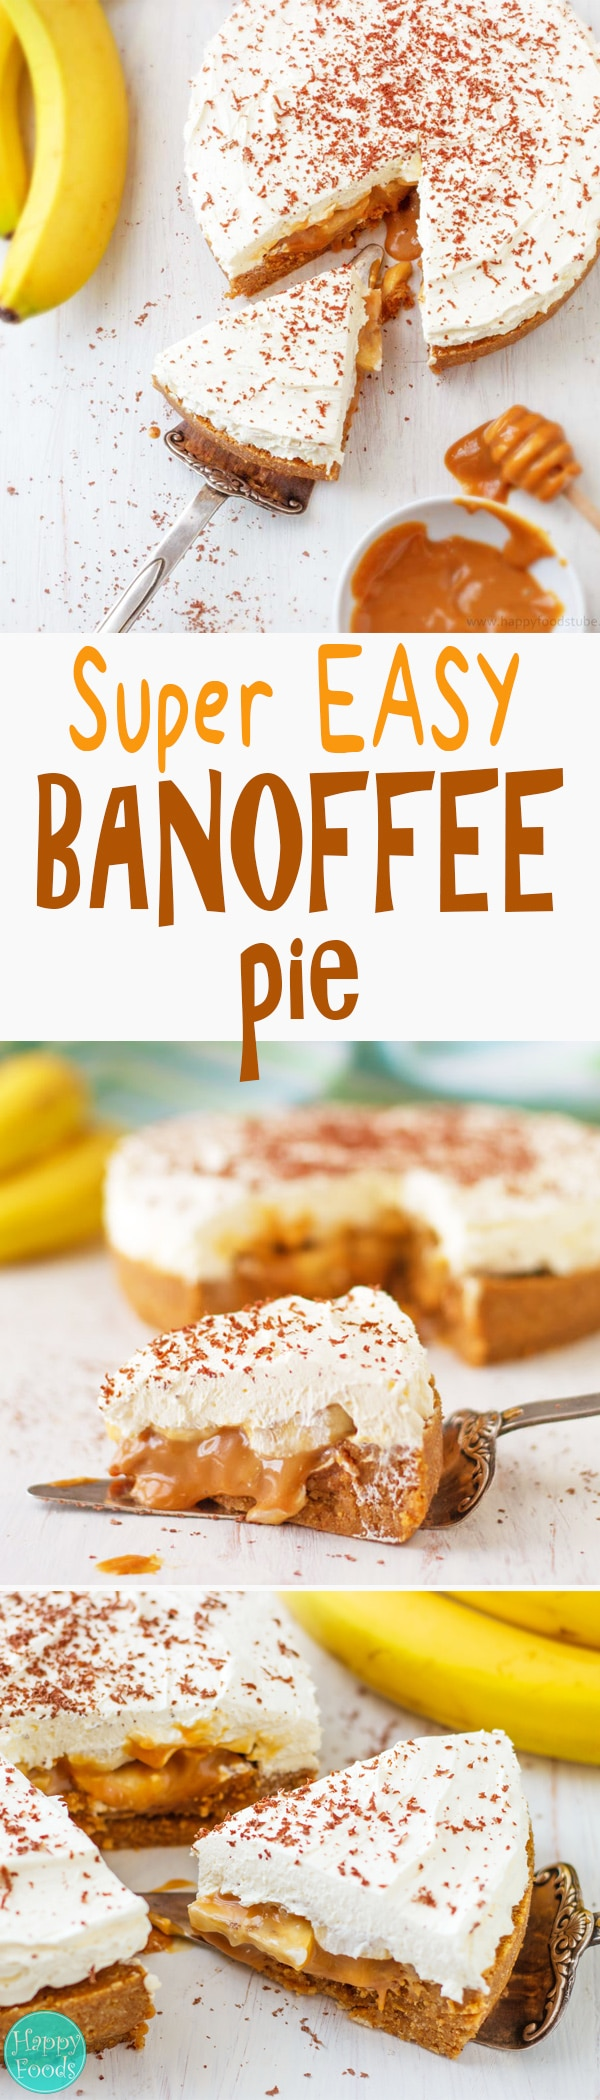 No bake Banana Banoffee Pie is also flourless and eggless dessert recipe. Made from simple ingredients bananas, cream & toffee. Homemade no bake cake, ready in 30 minutes